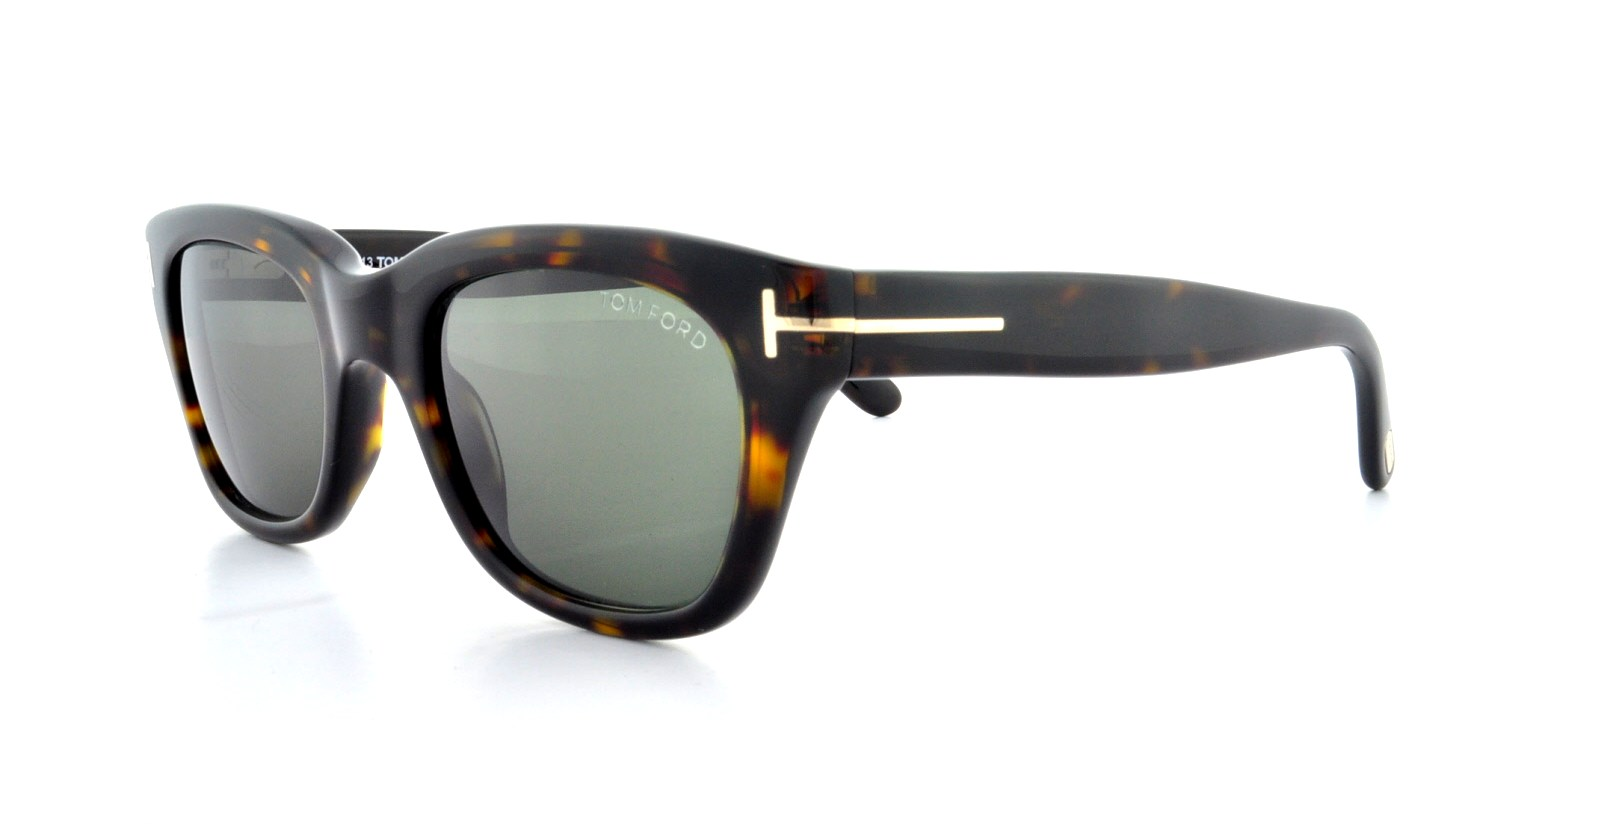 632b39e998 Designer Frames Outlet. Tom Ford FT0237 Snowdon